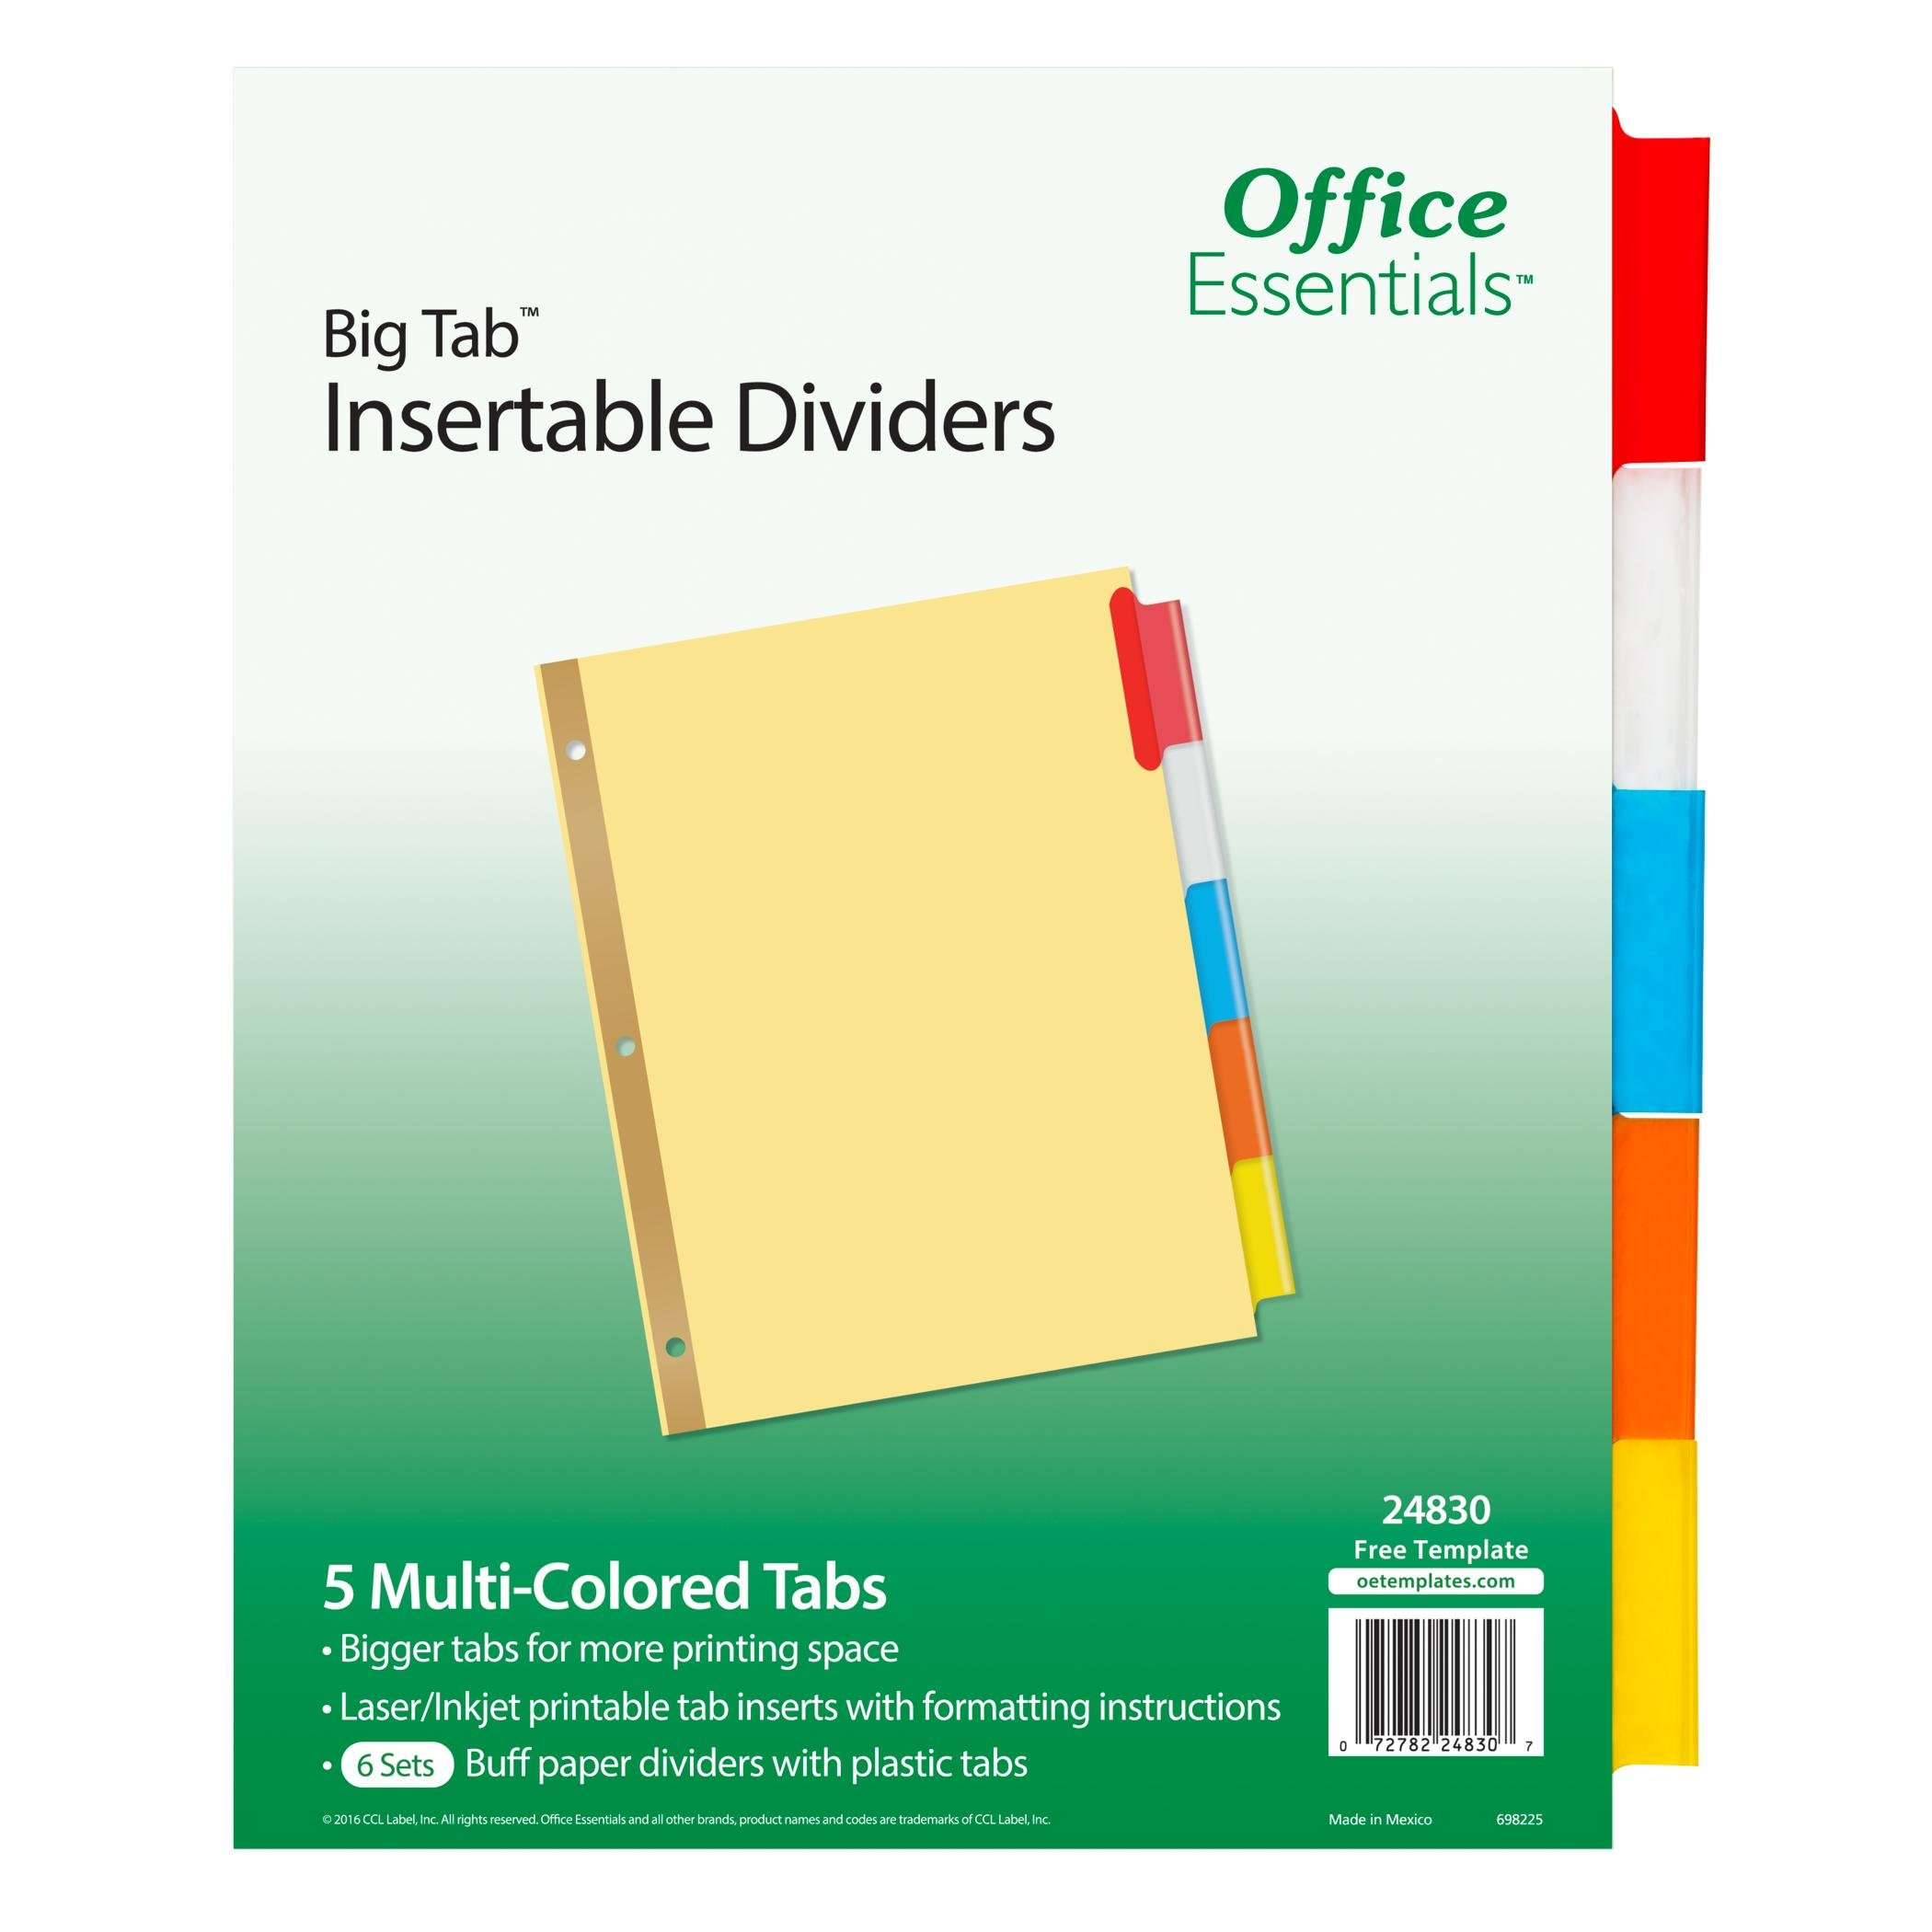 Office Essentials Big Tab Insertable, Multicolor Tabs, Buff Paper, 5 Tab, 6 Pack (24830)